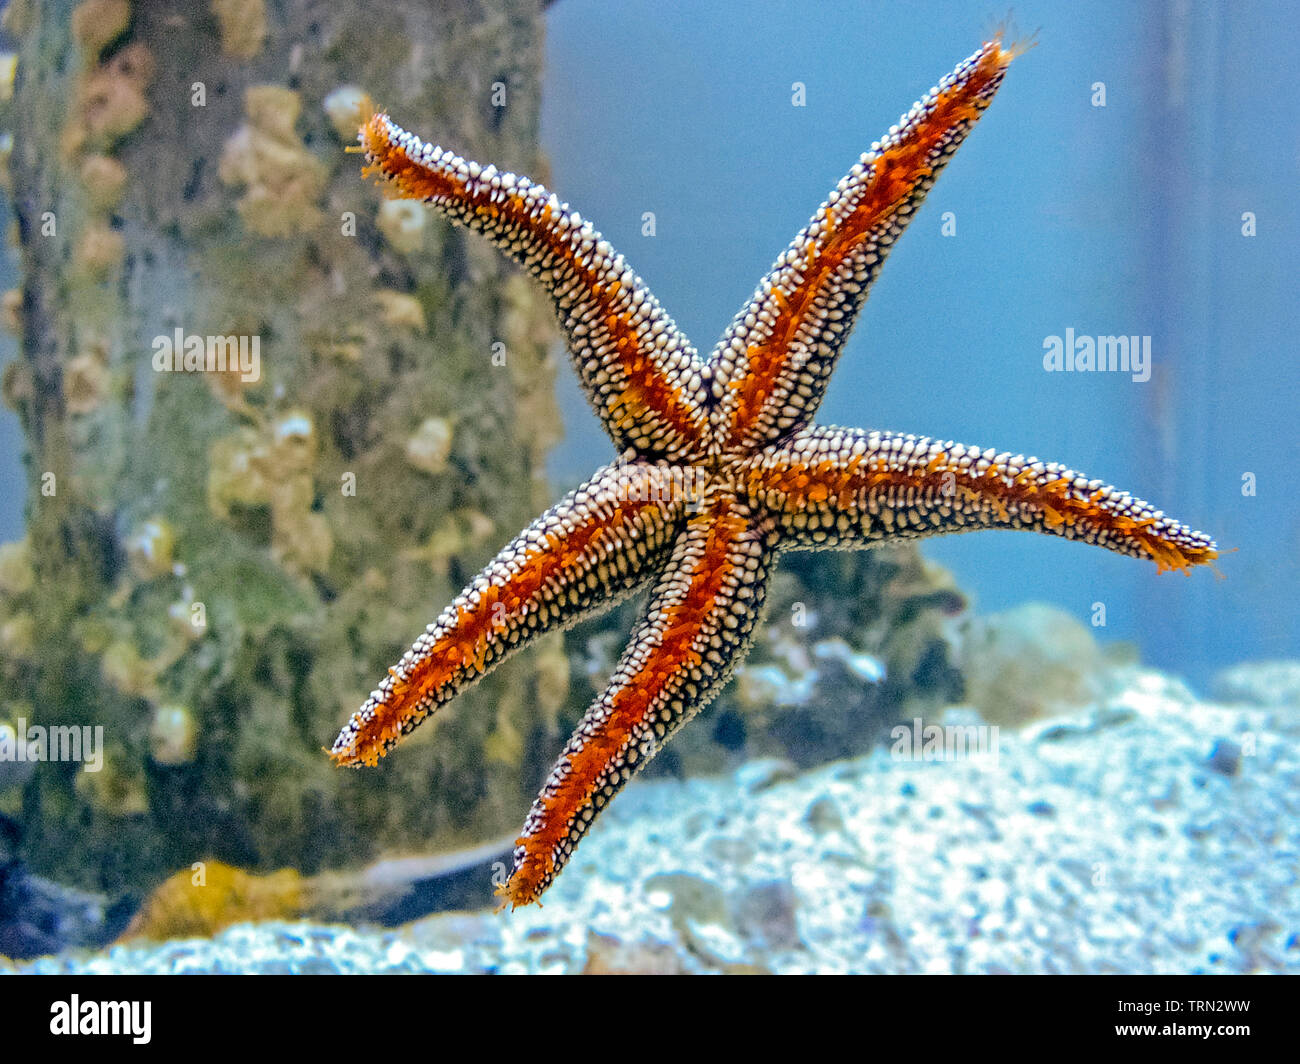 A sea star, commonly but erronously called a starfish, clings to the side of a glass aquarium with thousands of tiny orange-colored tube feet on the undersides of its five arms. The unique feet are used to move around and to hold onto prey. These star-shaped echinoderms are marine invertebrates, not fish, and have tough, spiny skin for protection. The sea animals have the remarkable ability to grow back any arm that has been broken off; this regeneration can take about a year. While five arms is most common, some of the more than 2,000 species of sea stars have 10, 20, and even 50 arms. - Stock Image